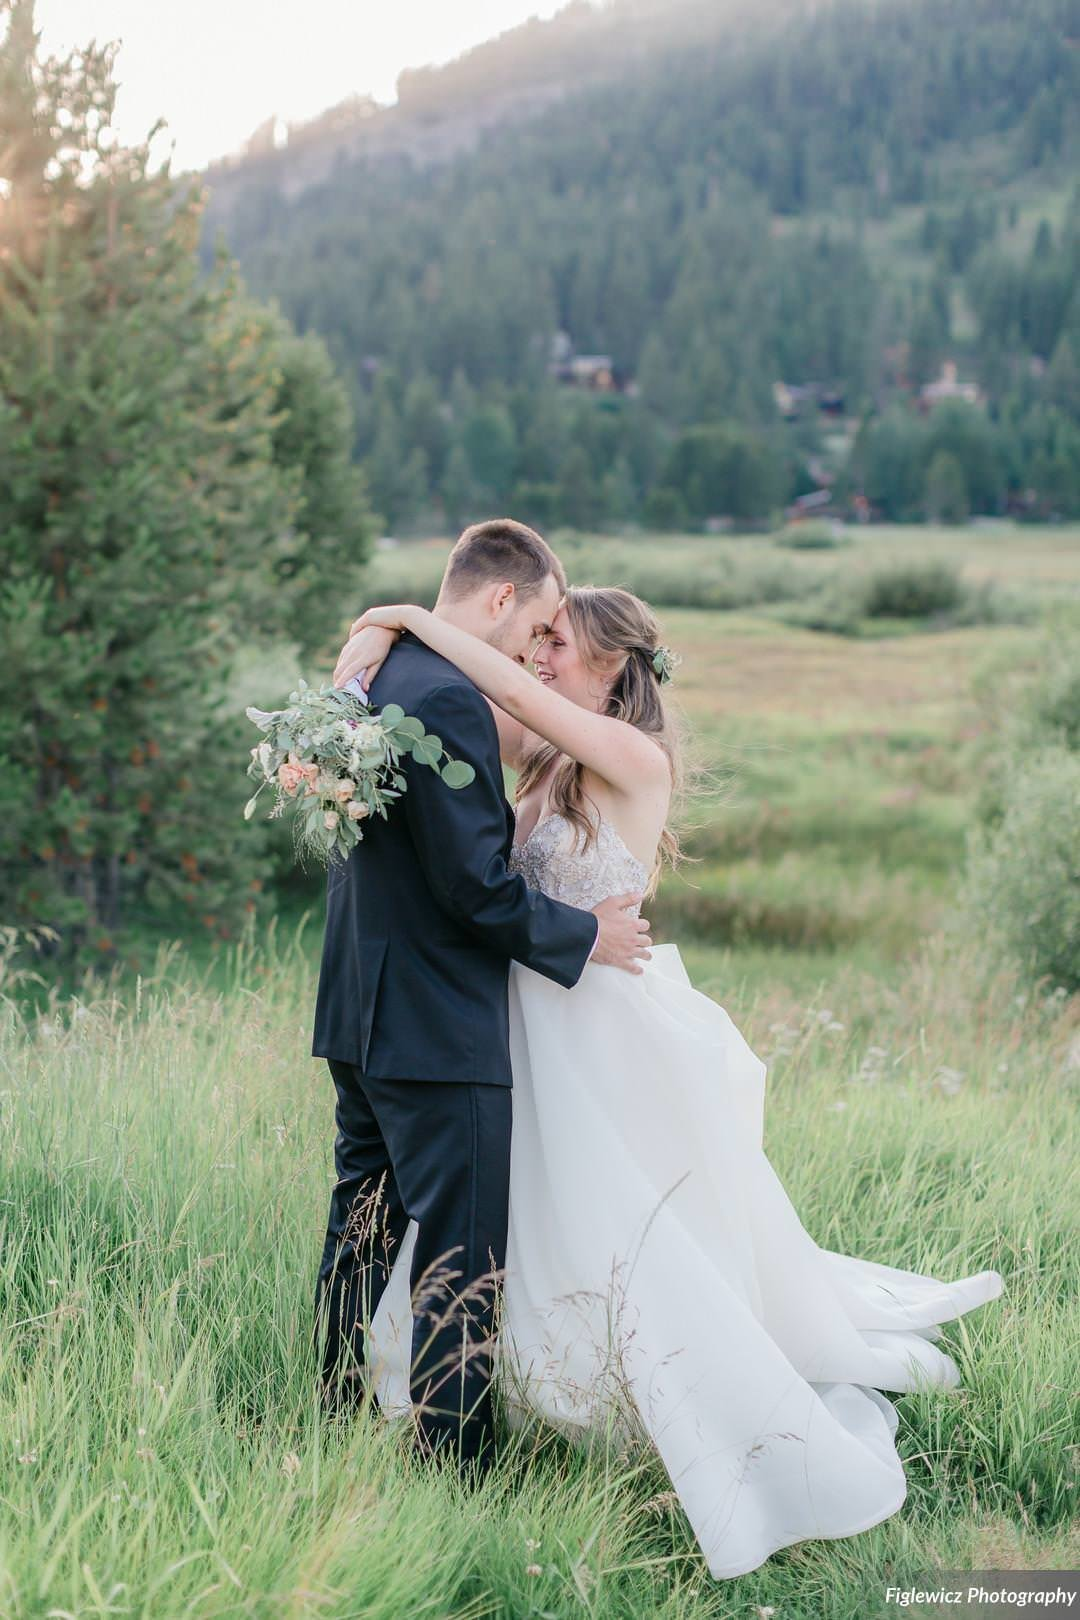 Garden_Tinsley_FiglewiczPhotography_LakeTahoeWeddingSquawValleyCreekTaylorBrendan00146_big